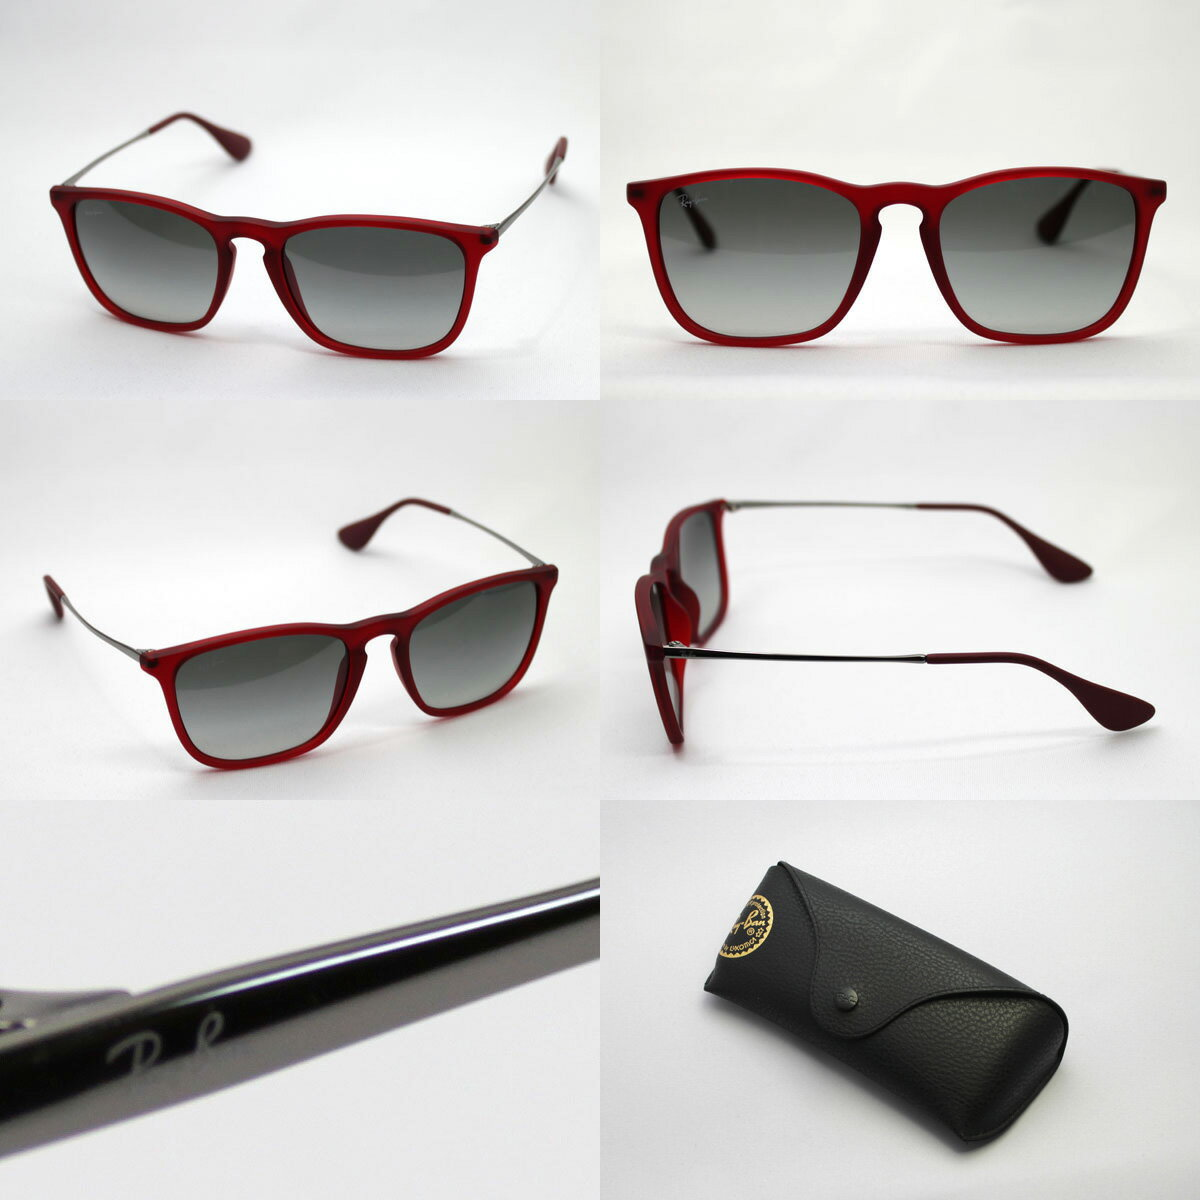 High Quality With Global Standards Every Ray Ban Official product undergoes an extensive testing and quality control procedure, ensuring each and every item purchased meets global quality standards.